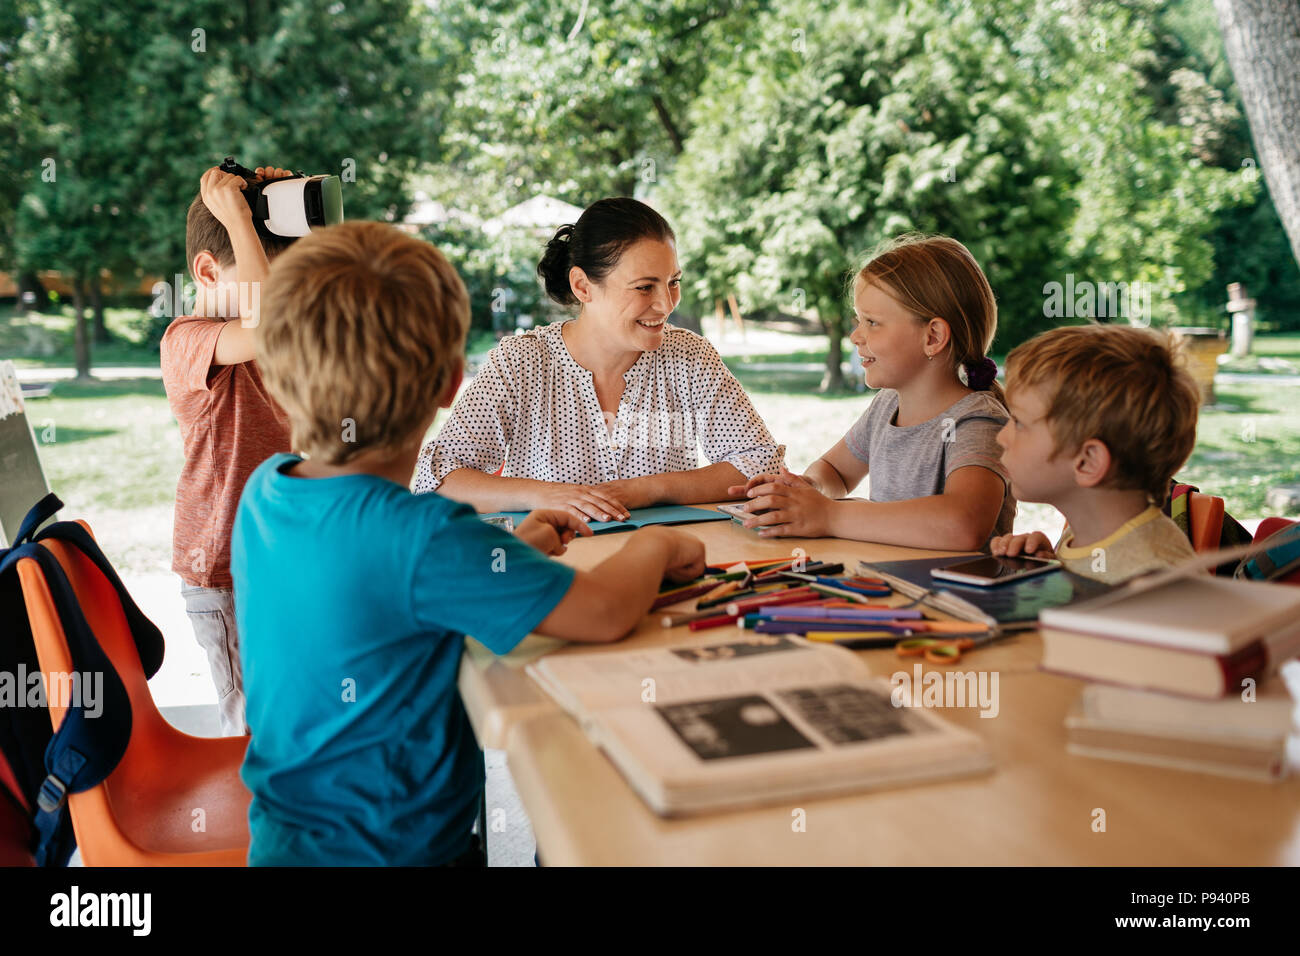 Young students engaged in a class outside in the fresh air. Outdoor learning - school children enjoying a lesson with their teacher. - Stock Image